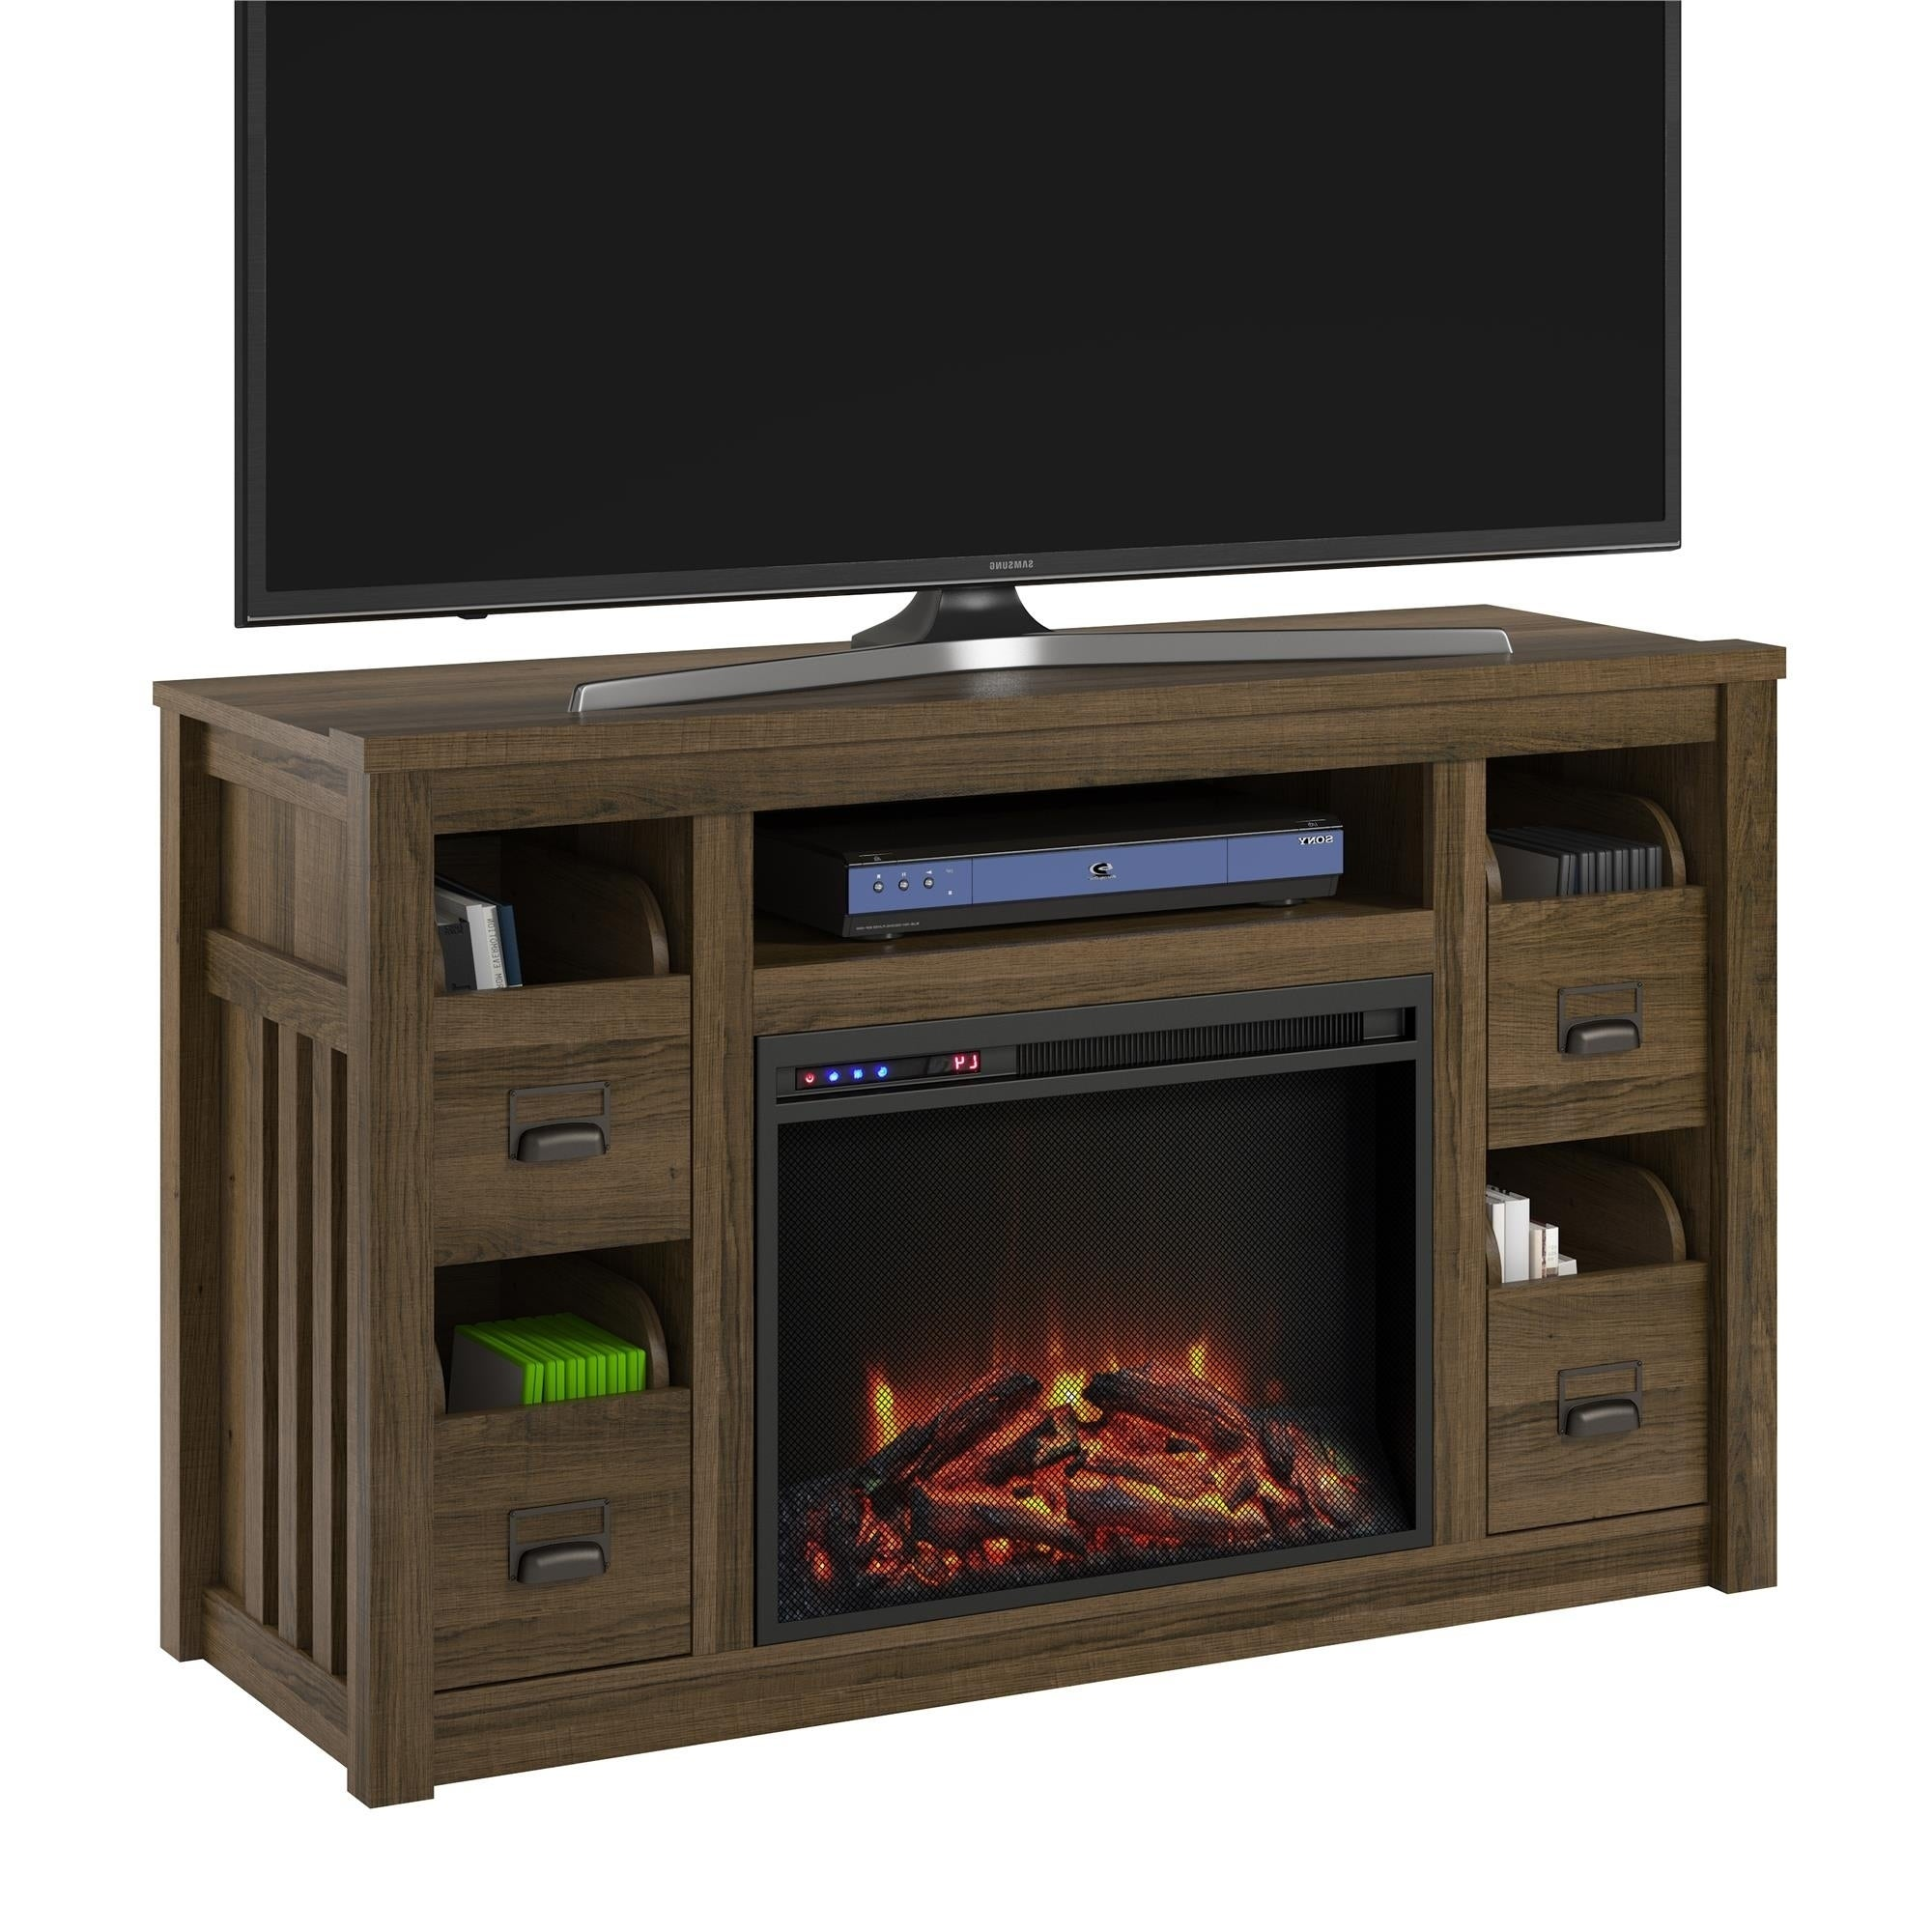 Ameriwood Home Adams Brown Oak Tv Stand With Fireplace For Tvs Up To 55 Inches